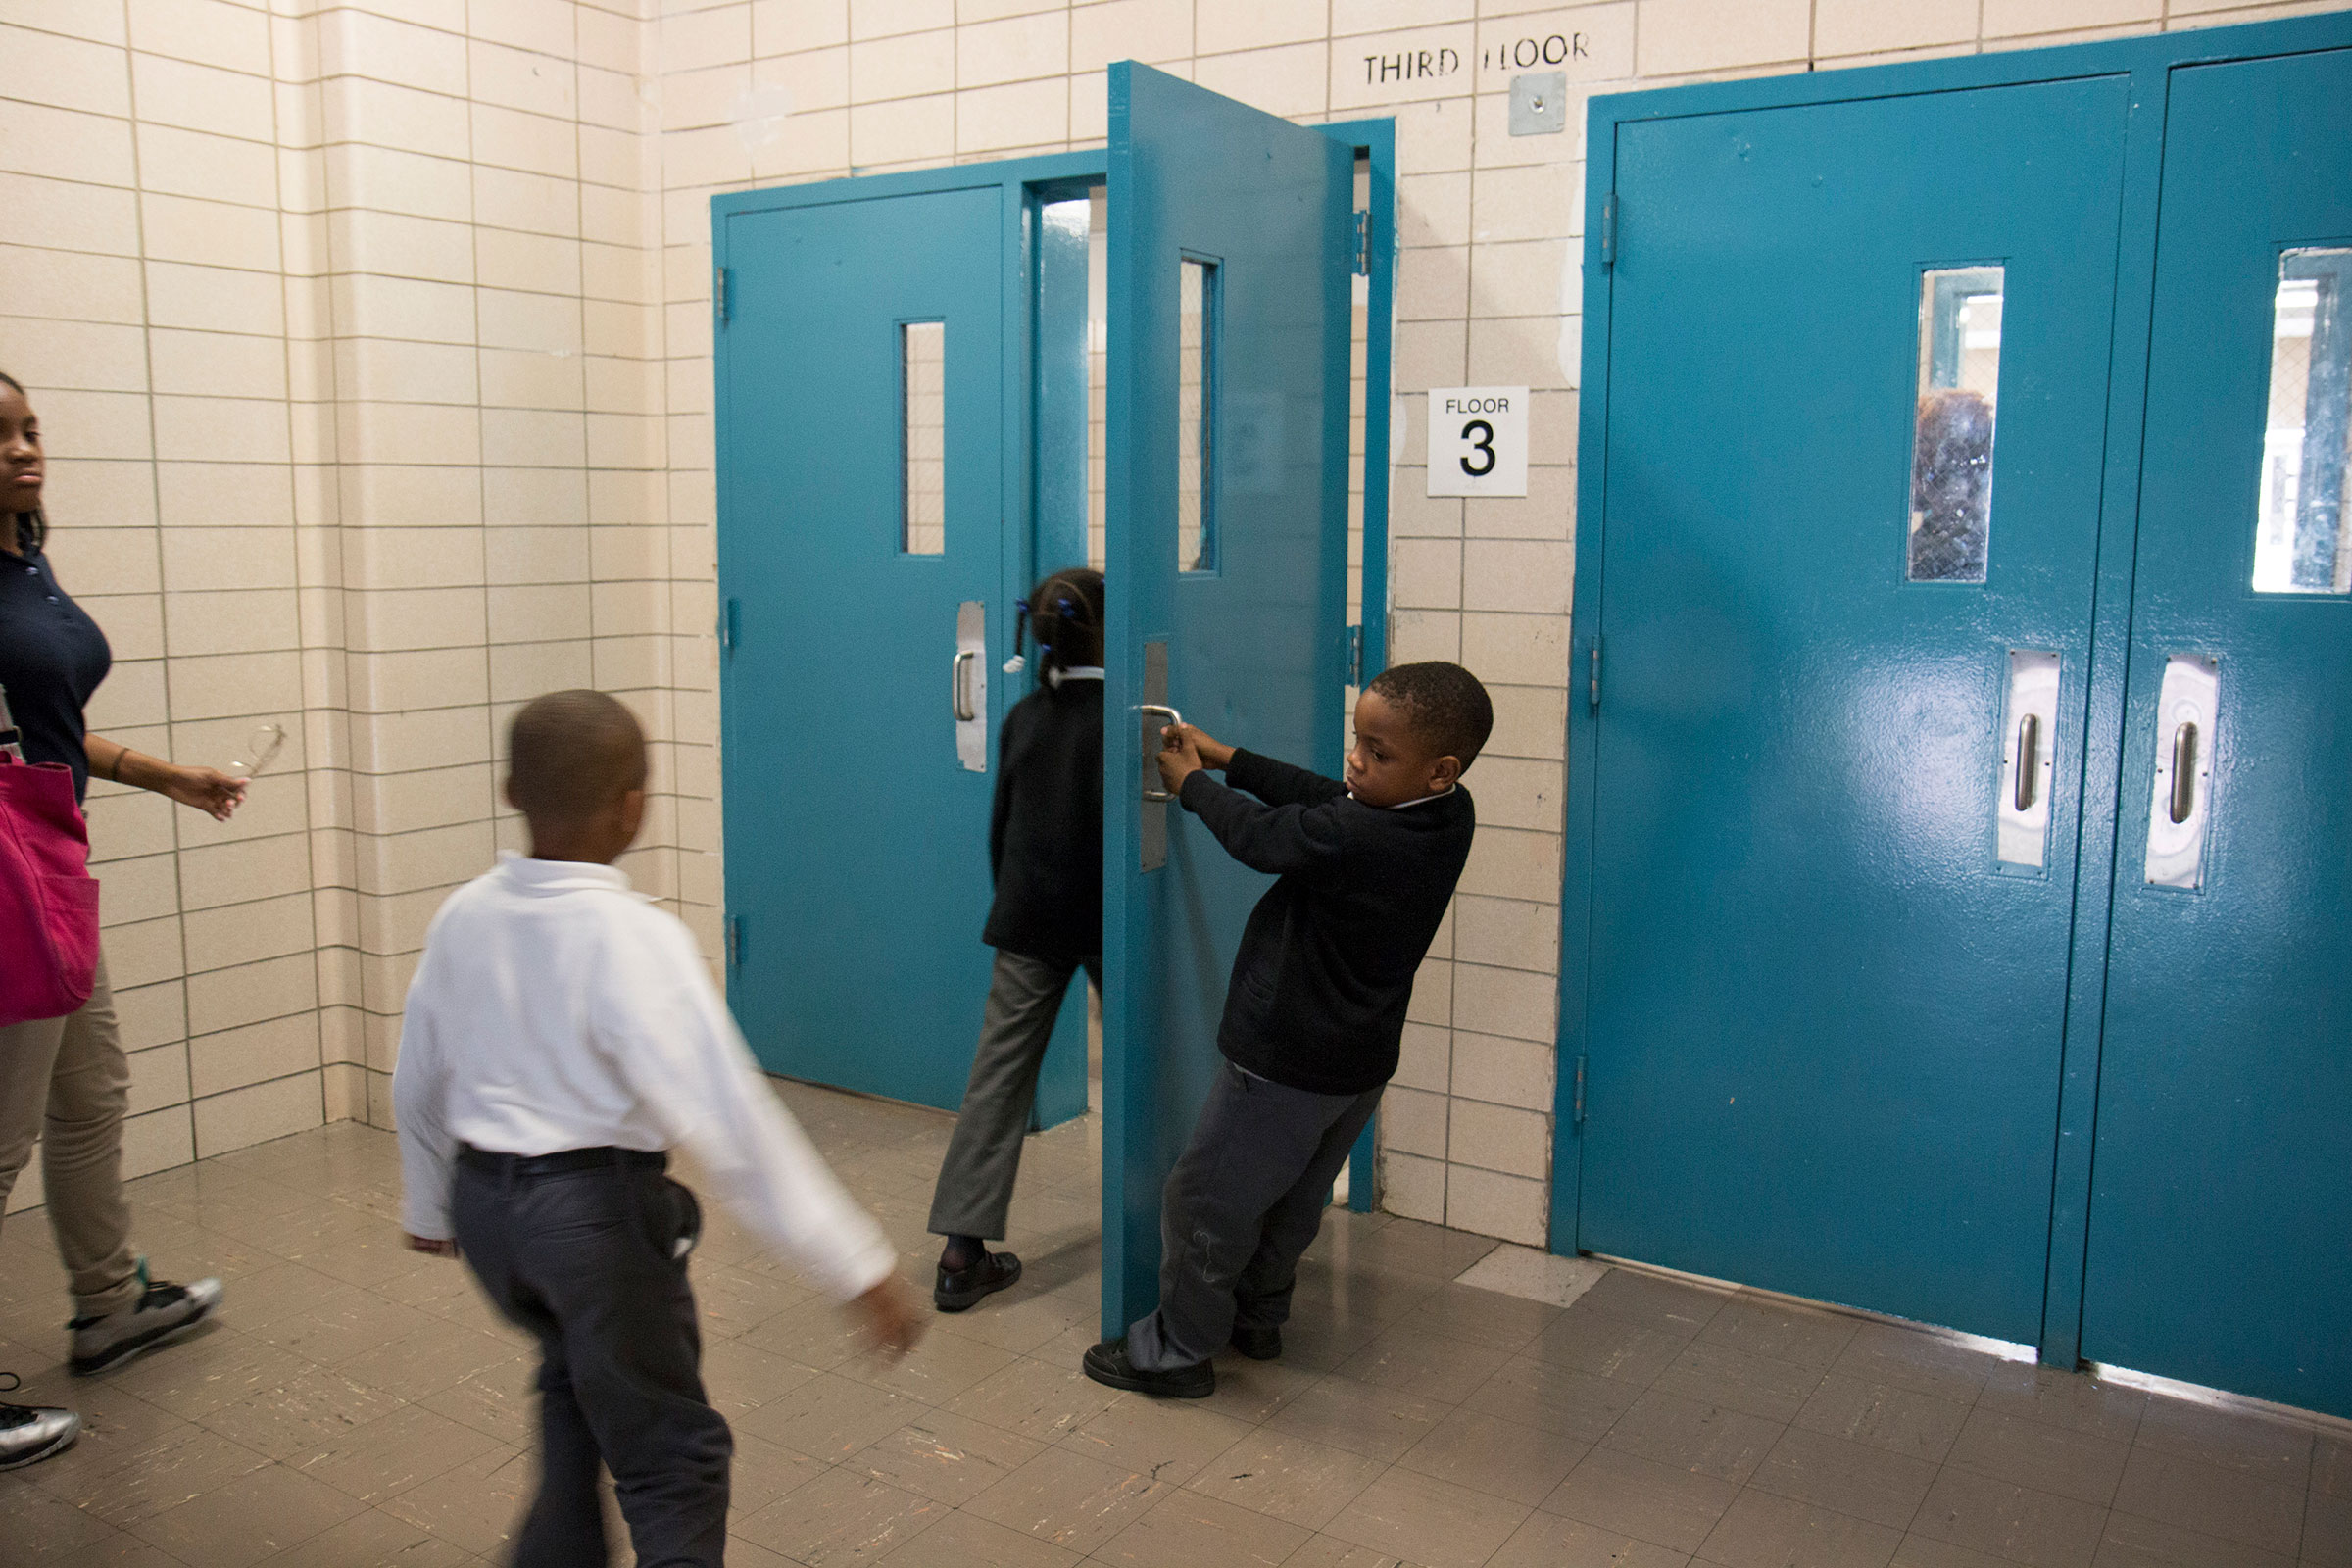 Second grader, Aiden, opens the door to the hall for fellow students and teachers at Leadership Prep Canarsie in Brooklyn, NY.